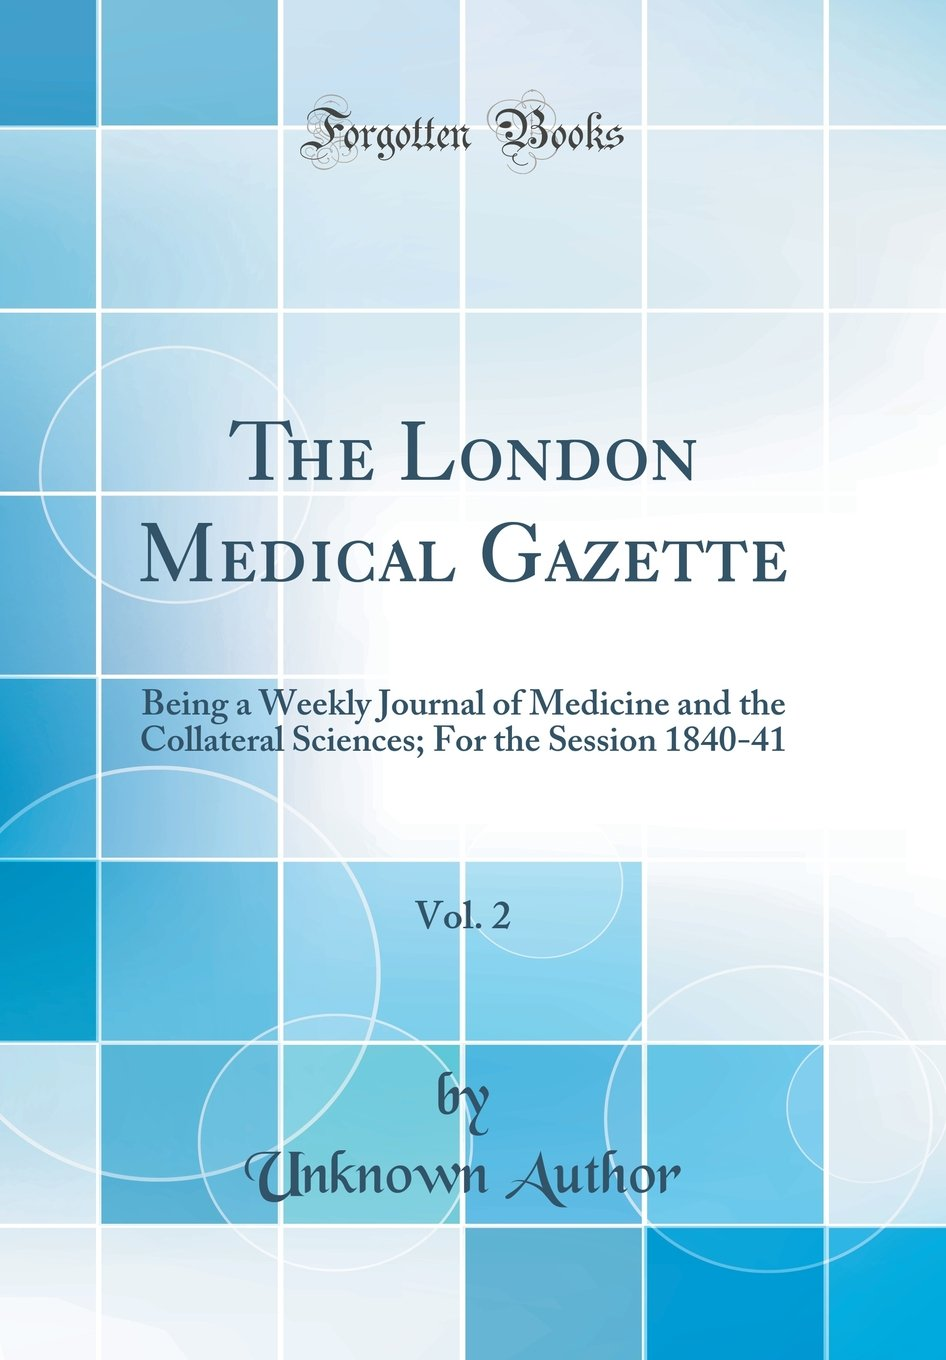 The London Medical Gazette, Vol. 2: Being a Weekly Journal of Medicine and the Collateral Sciences; For the Session 1840-41 (Classic Reprint) pdf epub